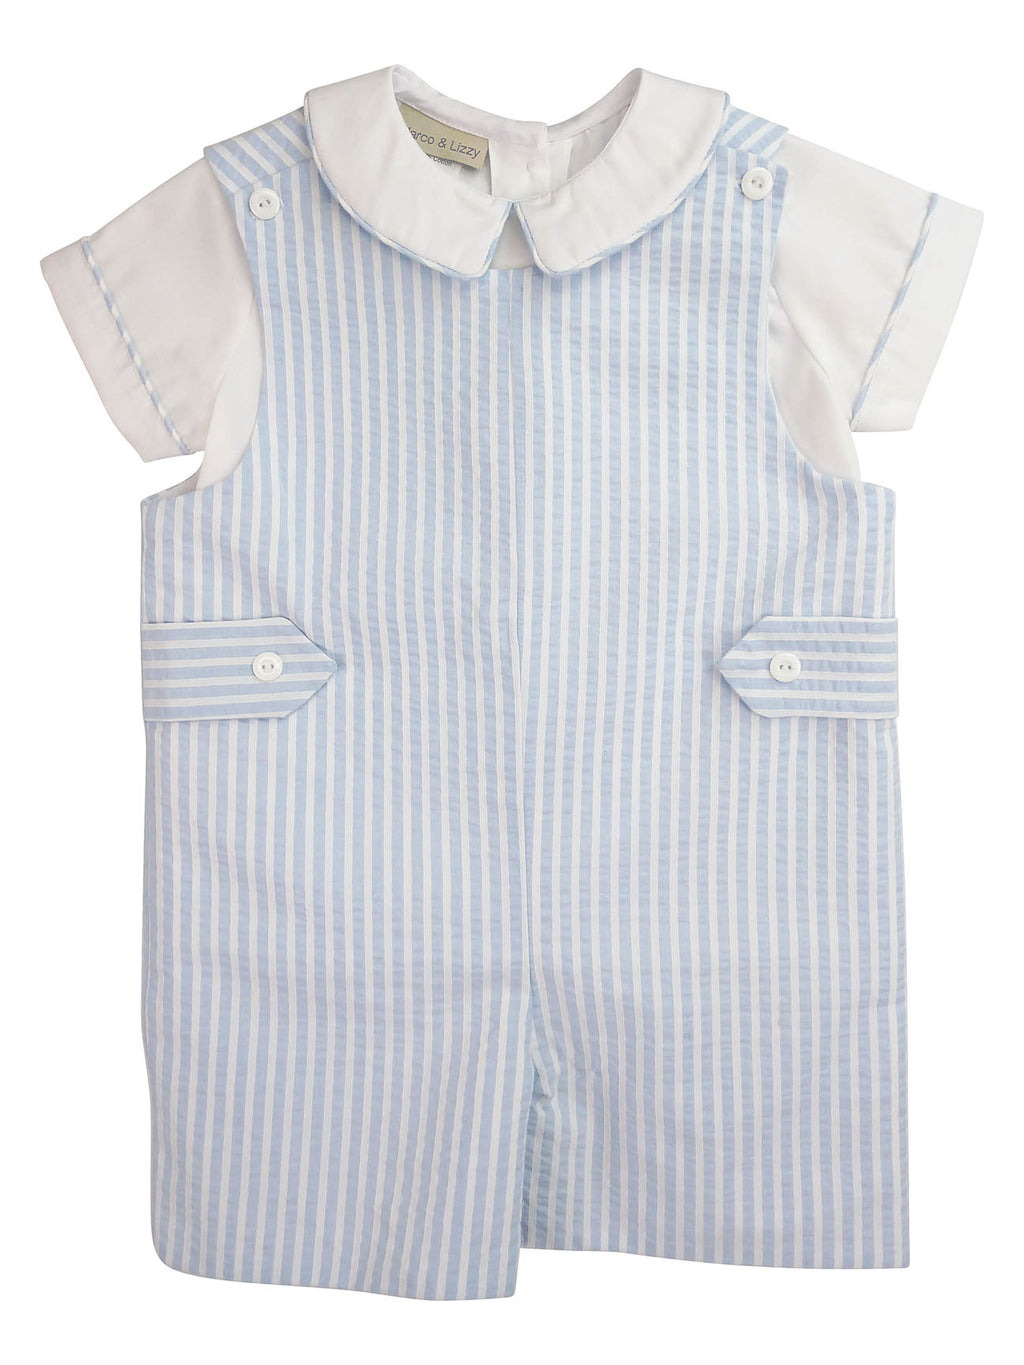 Lucas Overall Boy's Overall Set - Little Threads Inc. Children's Clothing